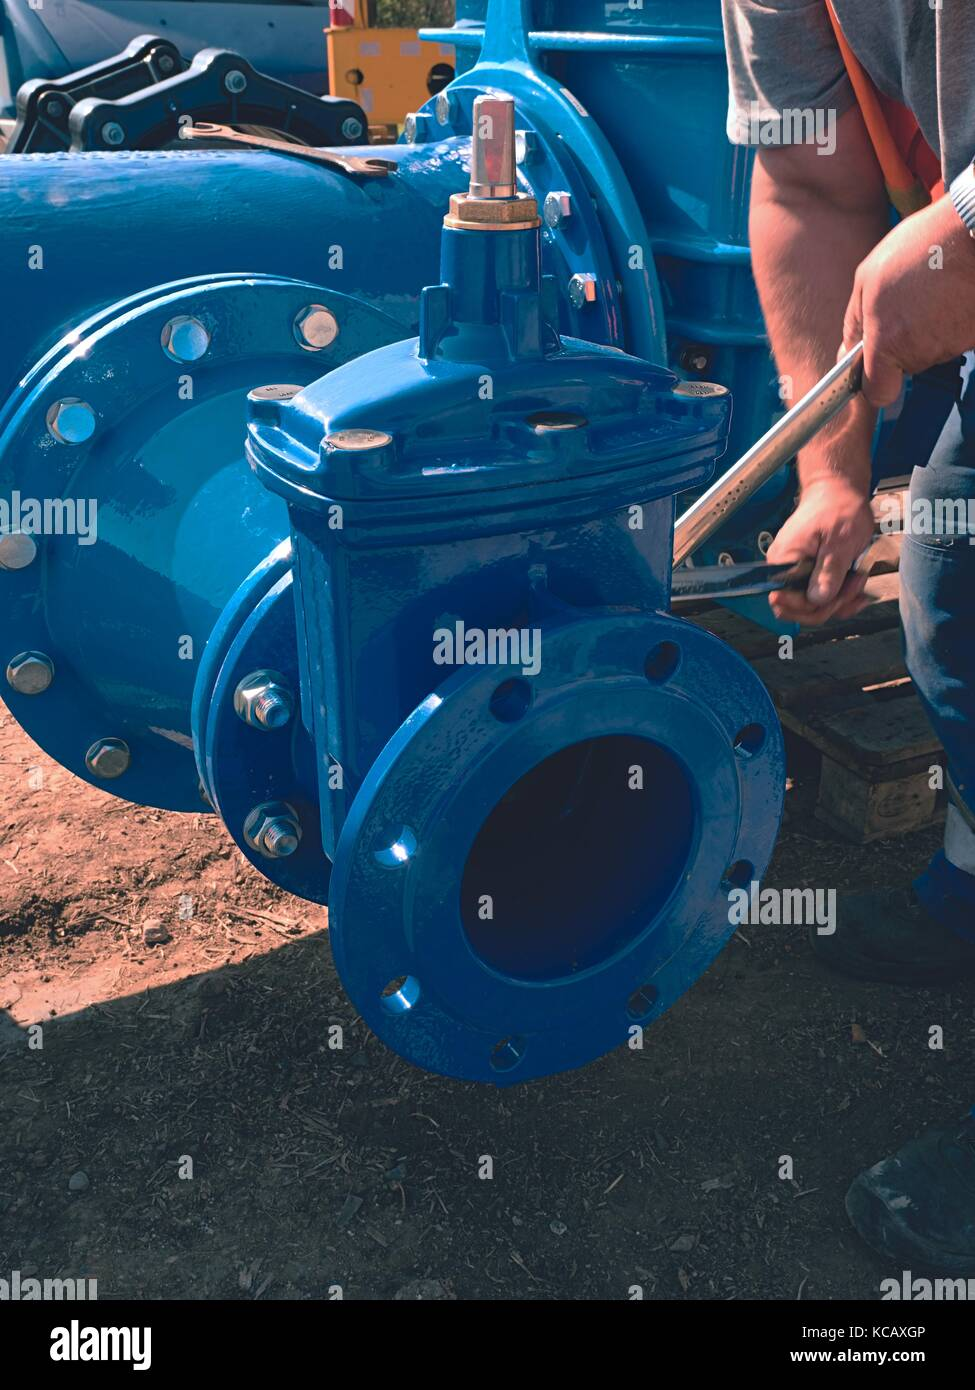 Worker hands screwing Gate valve with nuts on new dring water piping.  Water suply construction with new Gate valves - Stock Image